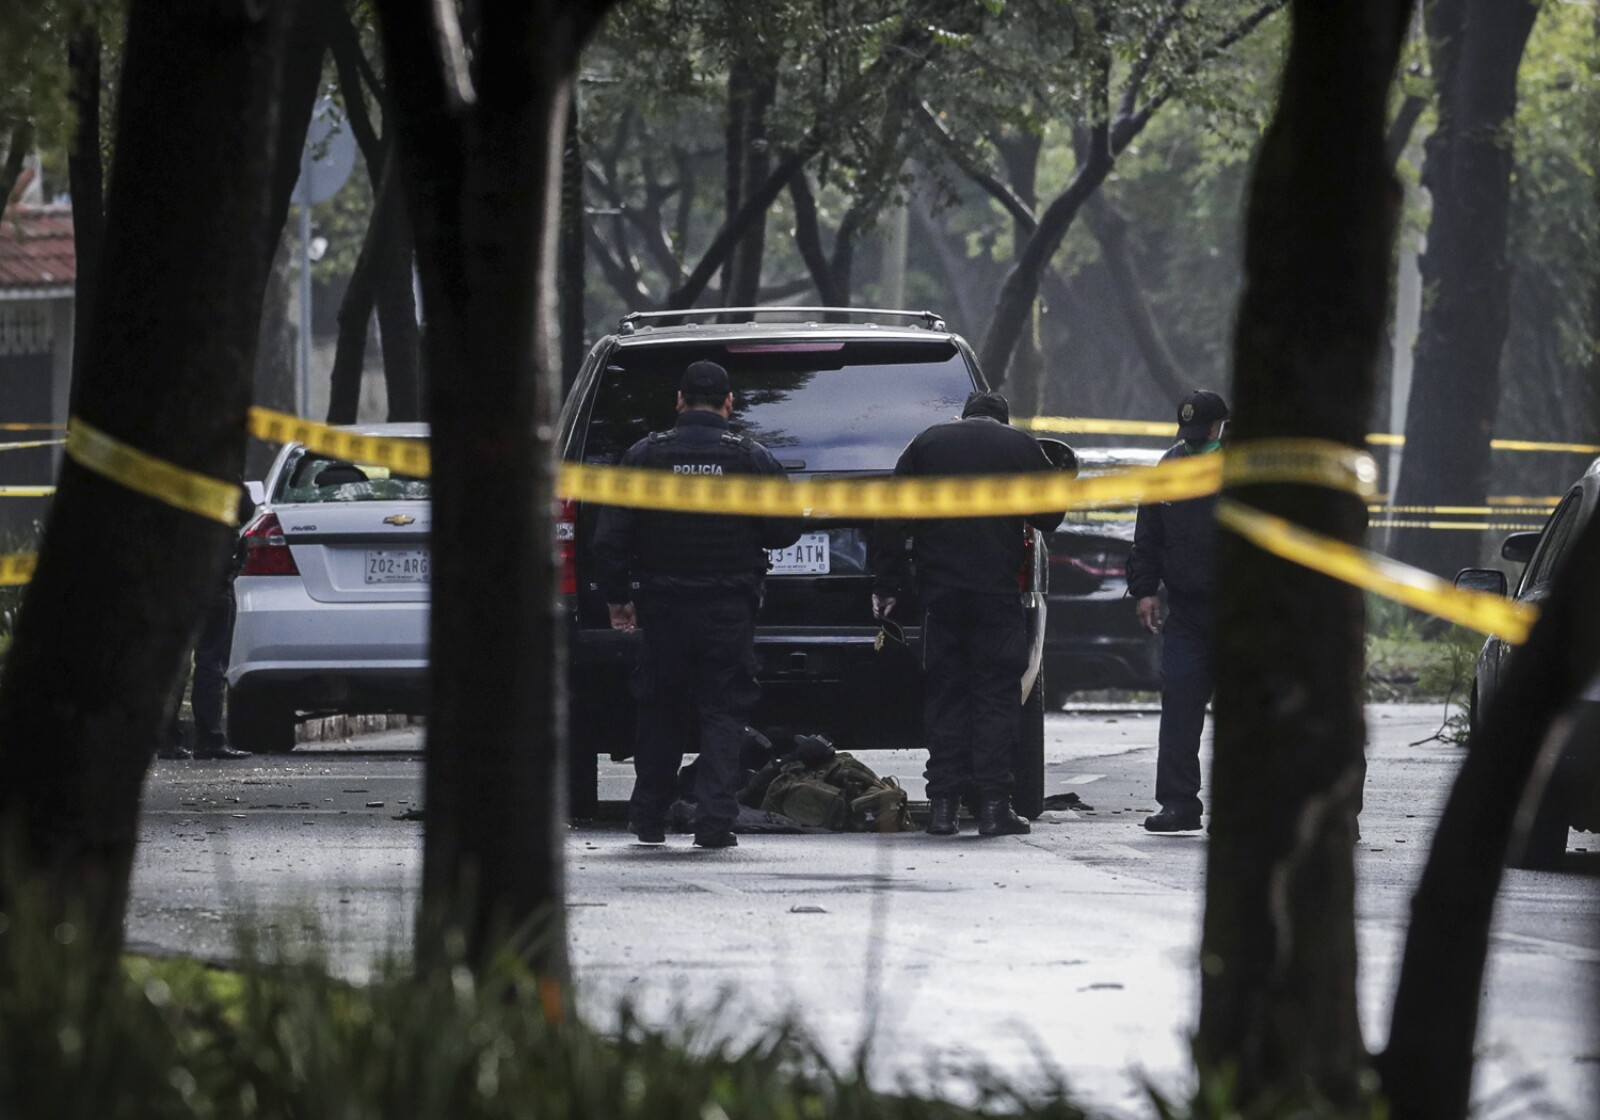 Police officers are seen near a vehicle after a shooting in Mexico City